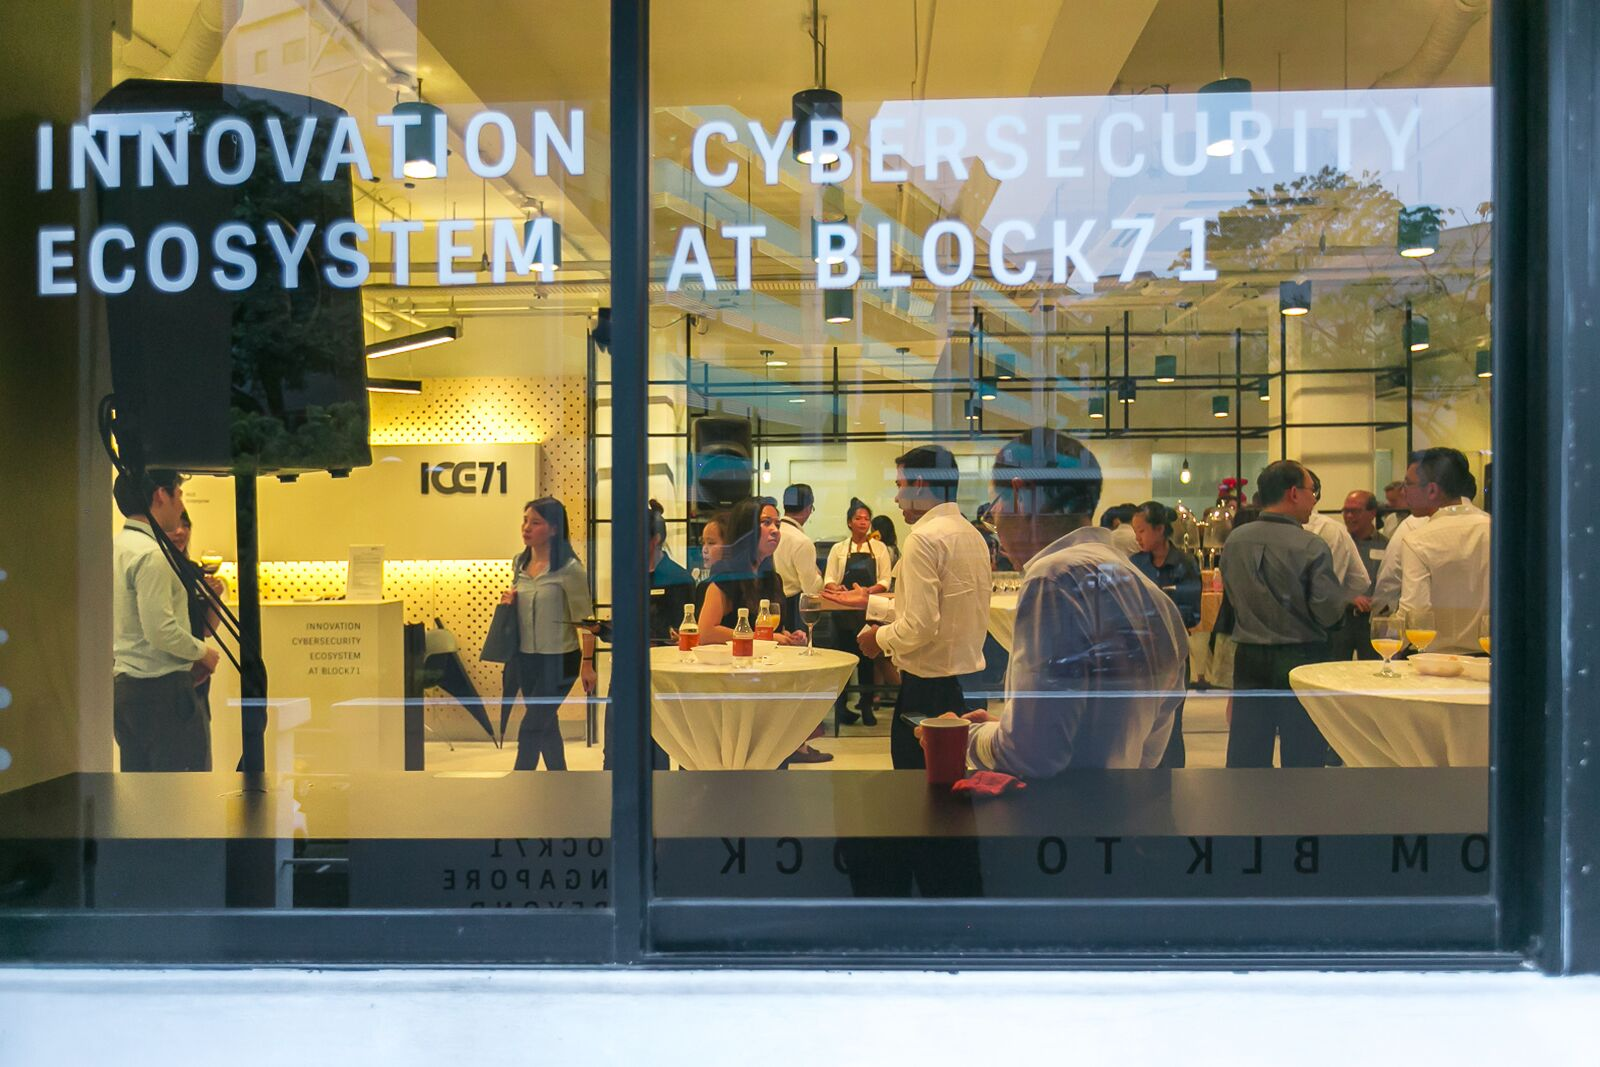 Innovation Cybersecurity Ecosystem at Block 71 - ICE71